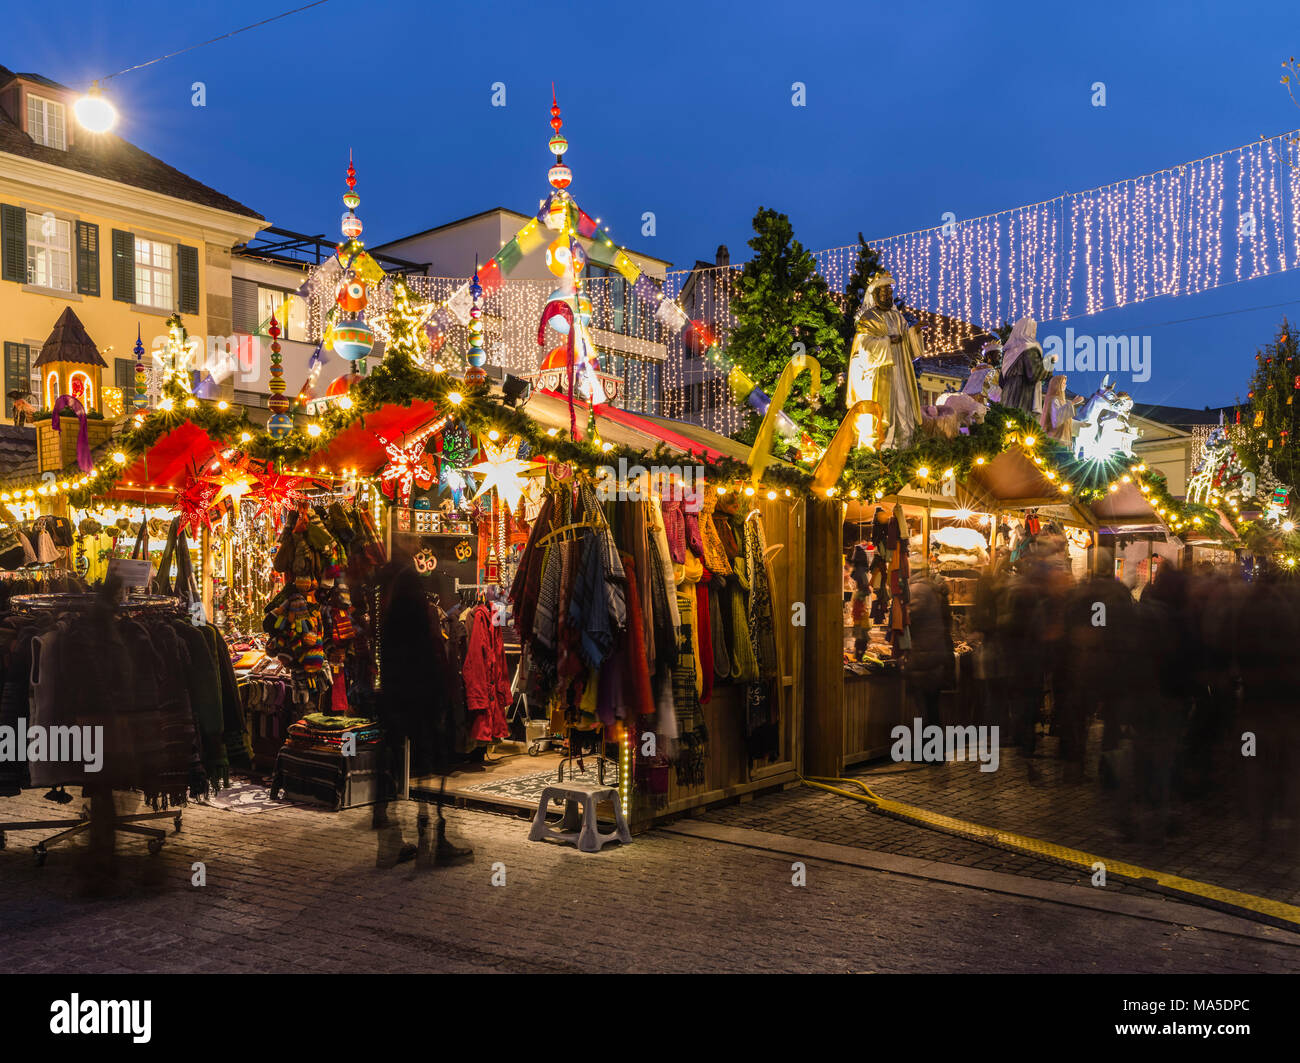 Christmas market in Winterthur - Stock Image